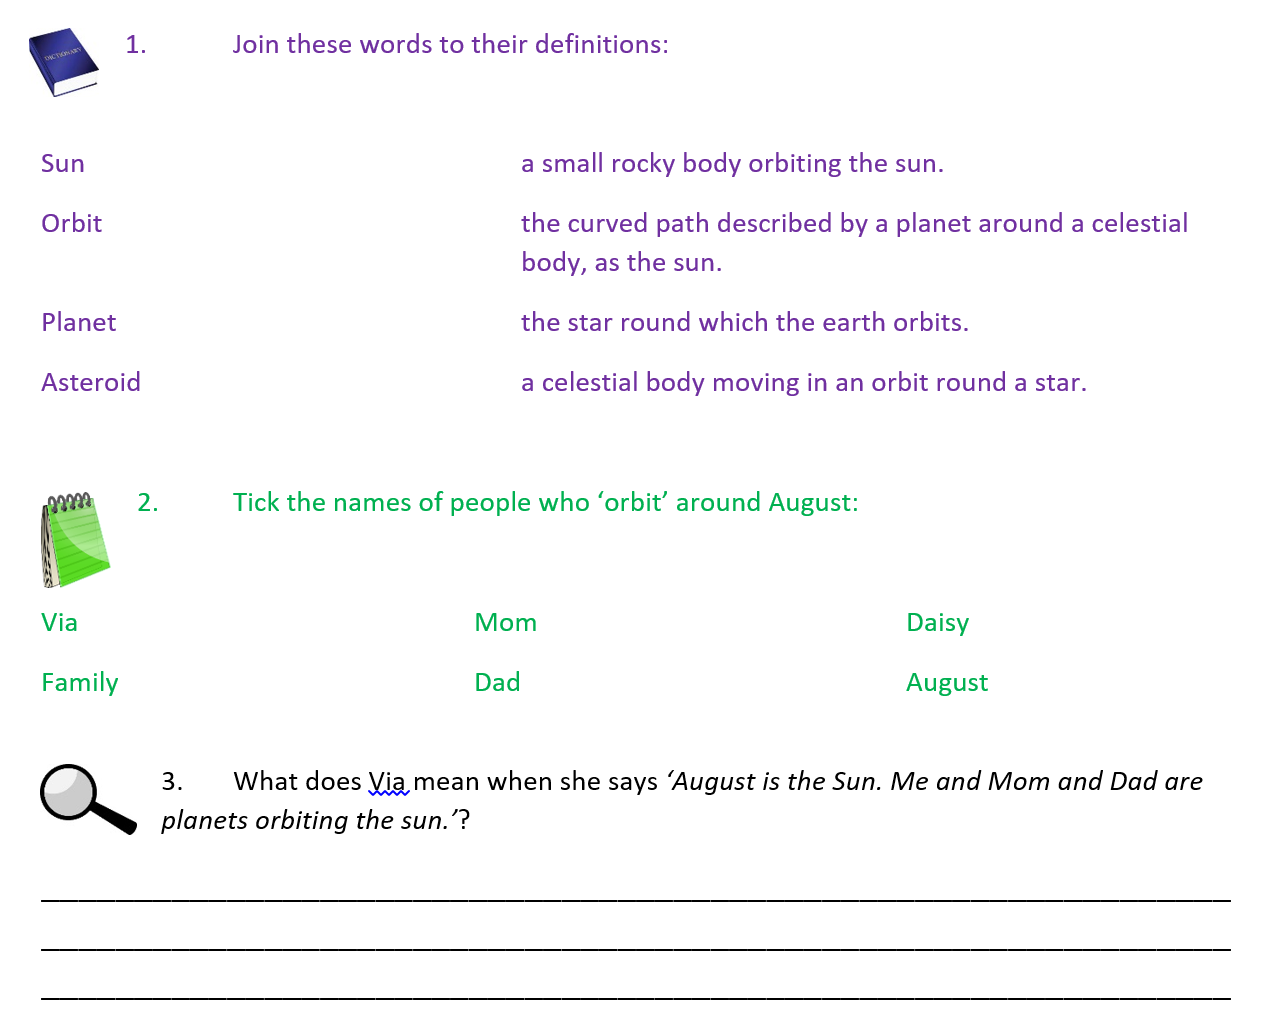 - How To Write Good Comprehension Questions |That Boy Can Teach